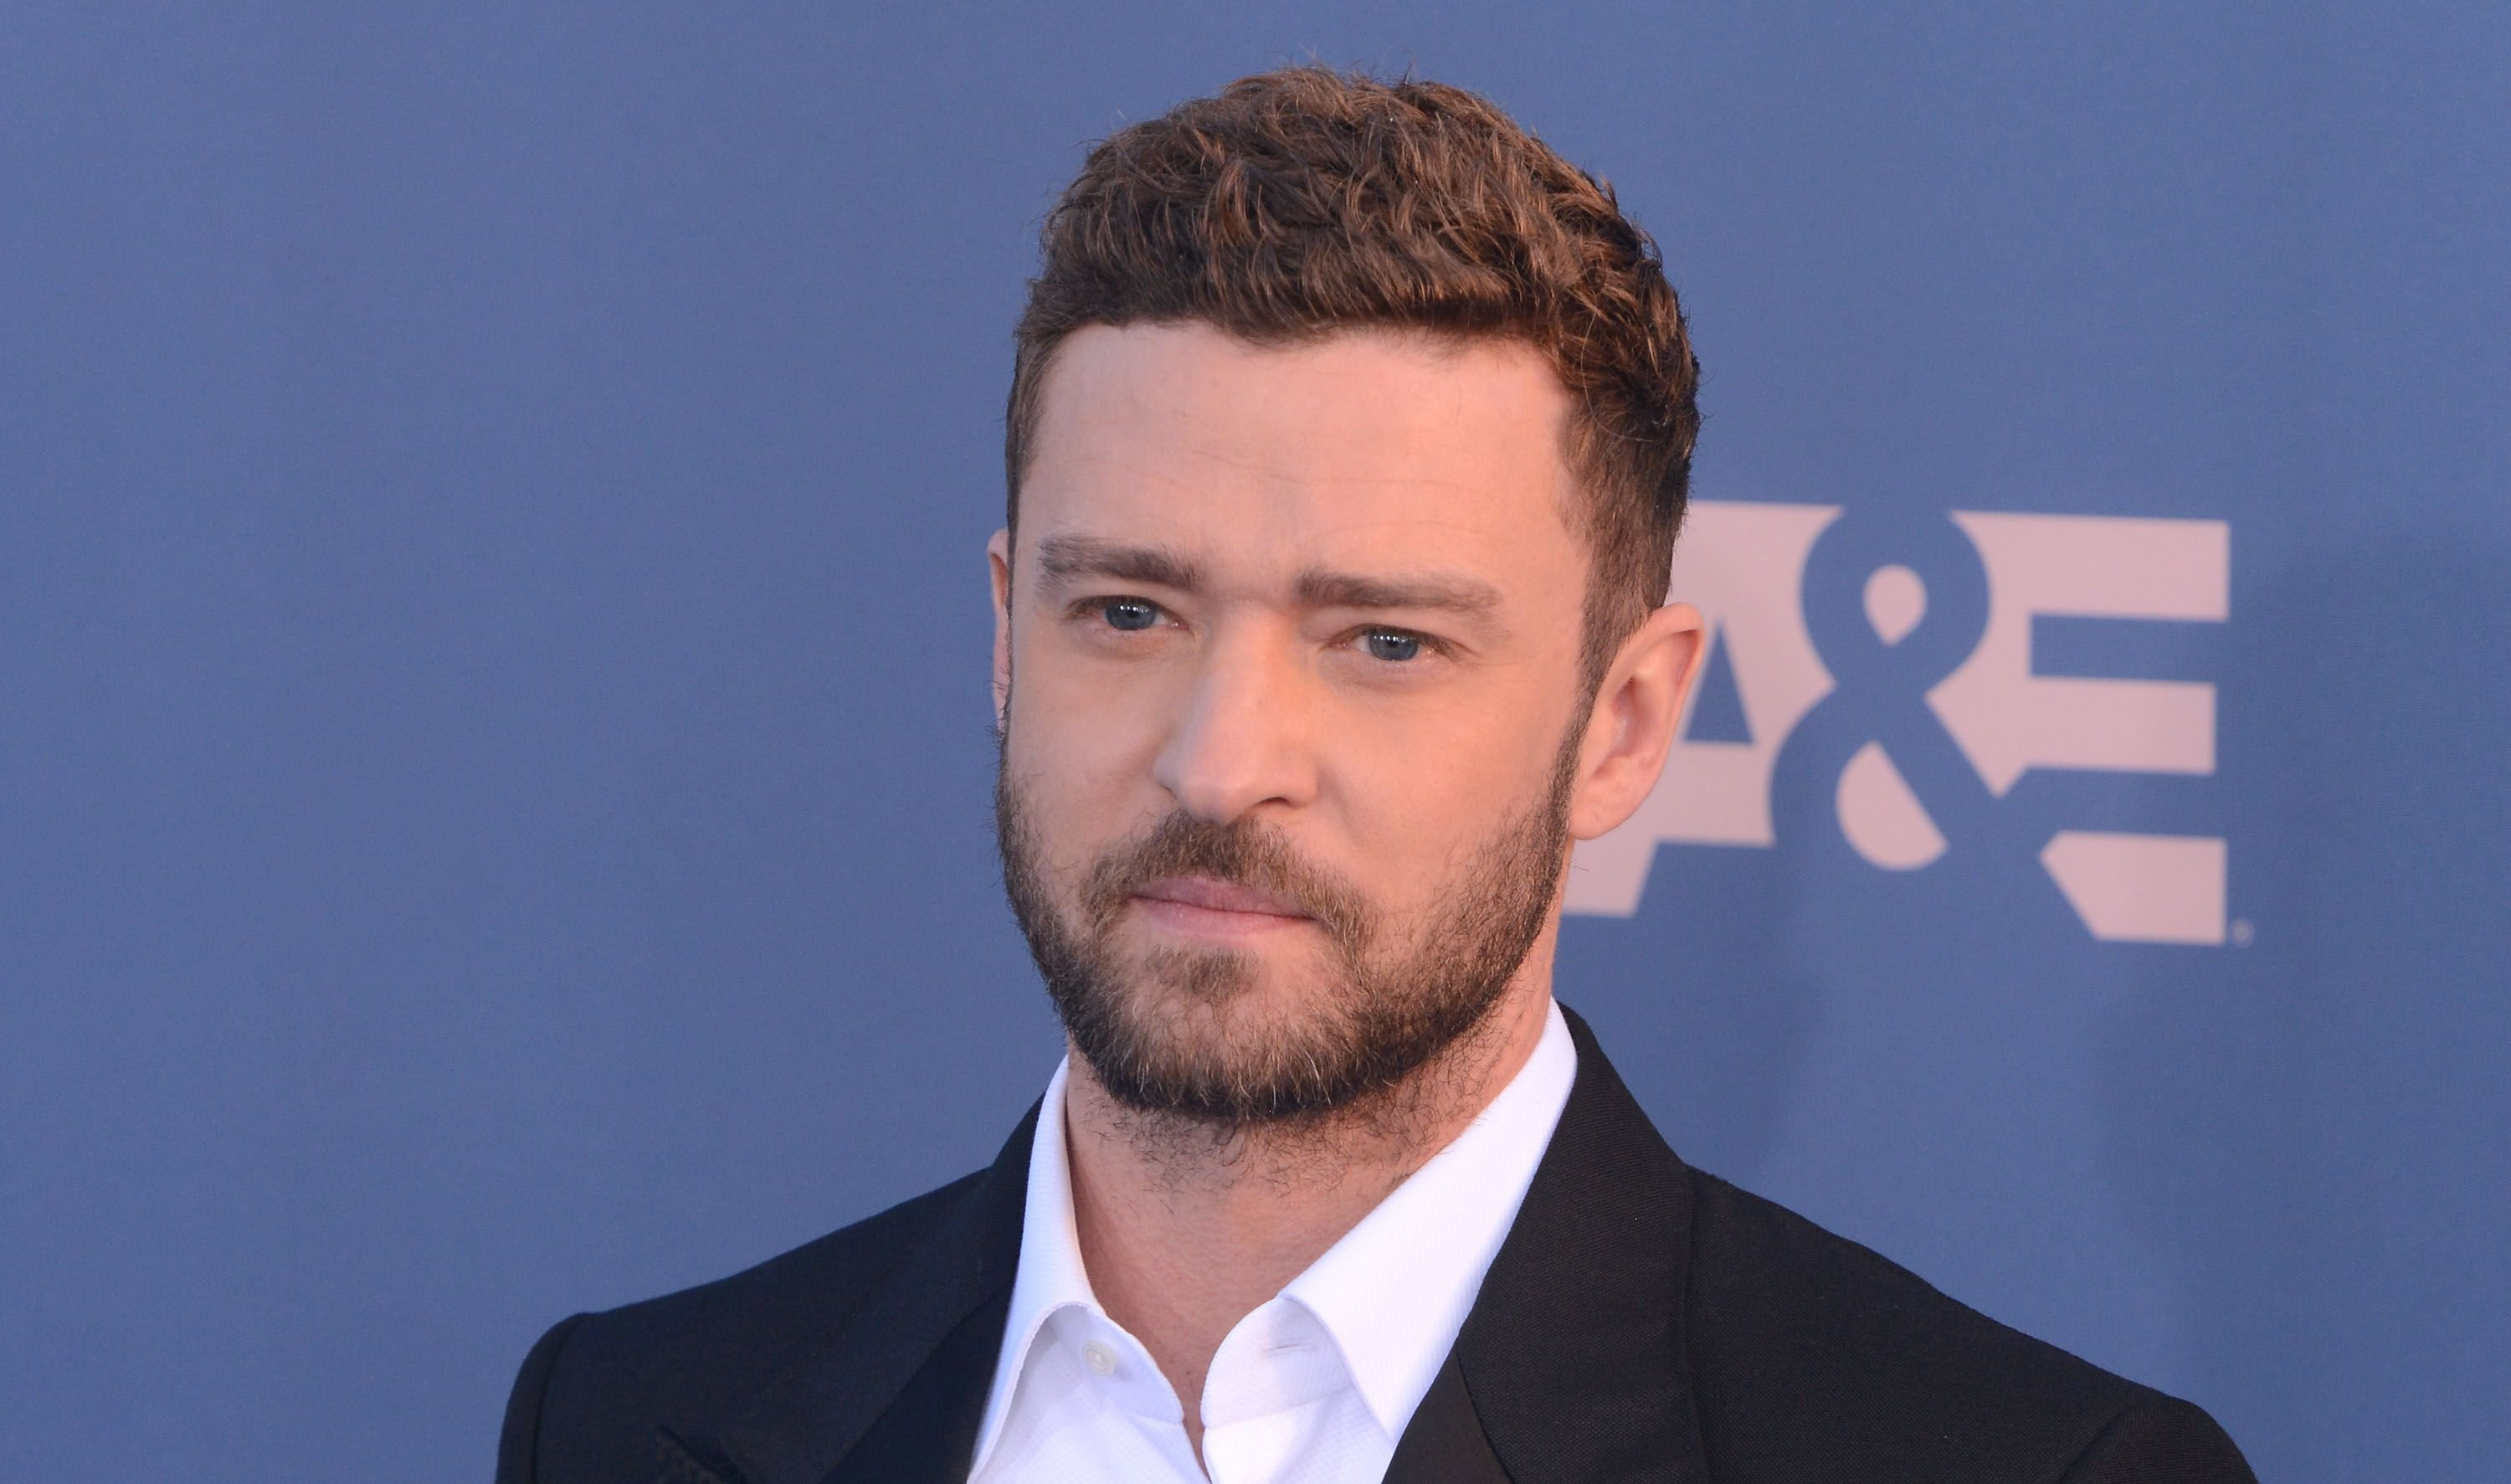 Justin Timberlake at The 22nd Annual Critics' Choice Awards at Barker Hangar on December 11, 2016 | Photo: Getty Images